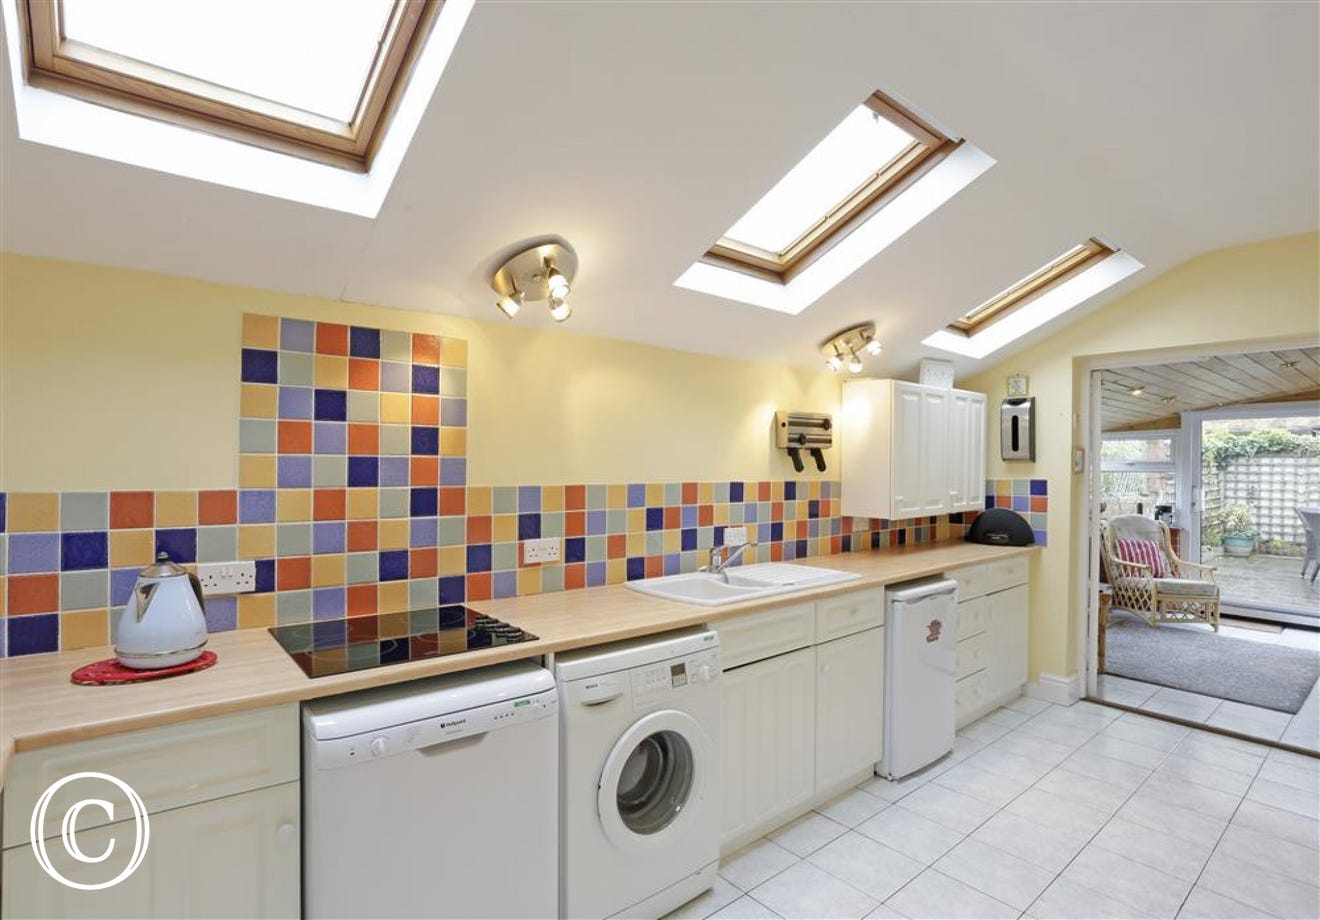 This kitchen with colourful wall tiles is situated in the perfect spot for kitchen and conservatory.